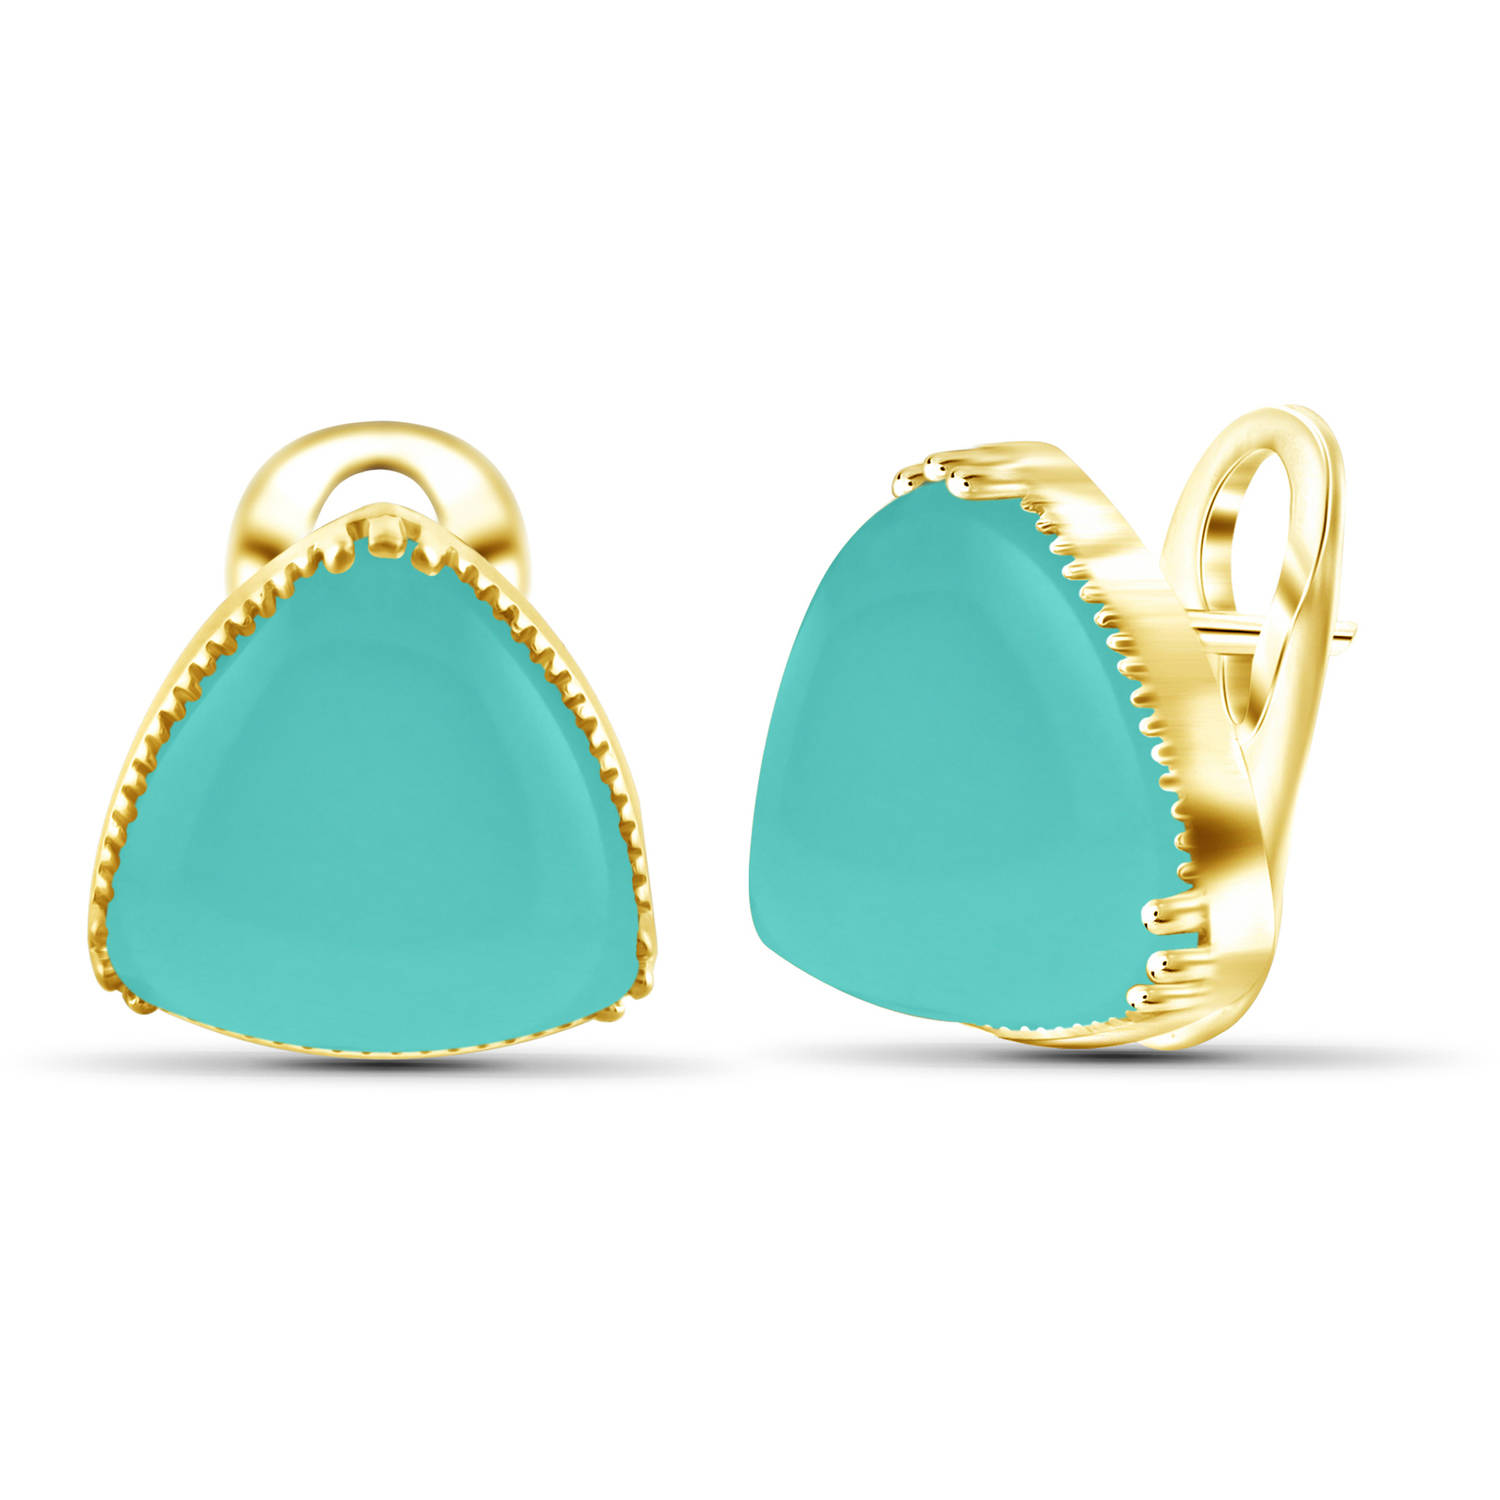 JewelersClub 17-1 2 Carat T.G.W. Chalcedony 14kt Gold over Silver Stud Earrings by JewelersClub